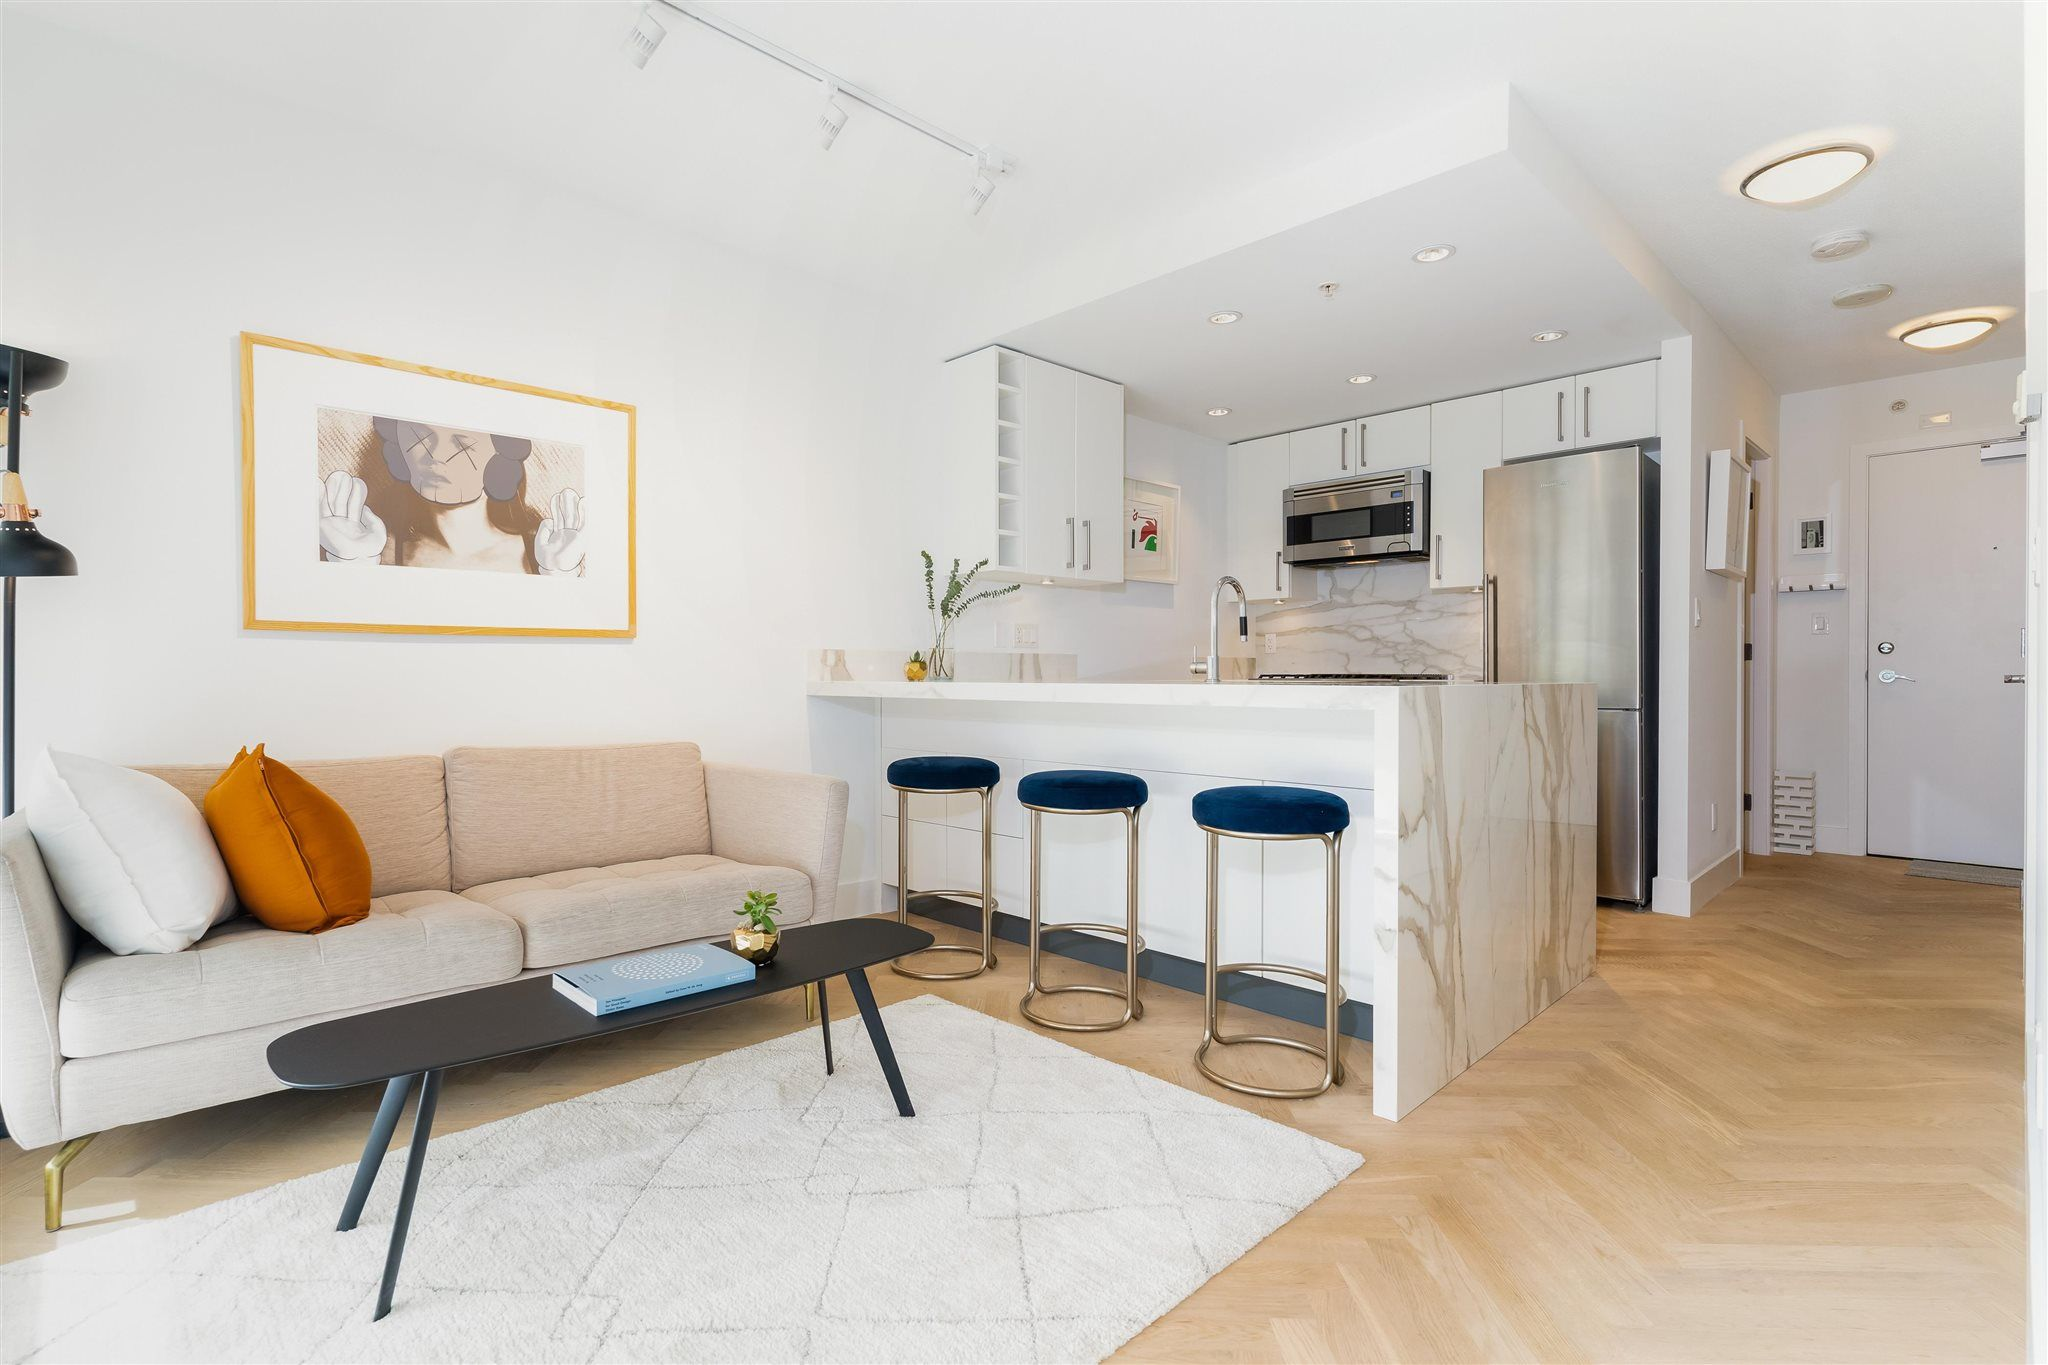 """Main Photo: 501 1708 COLUMBIA Street in Vancouver: False Creek Condo for sale in """"WALL CENTRE FALSE CREEK"""" (Vancouver West)  : MLS®# R2603692"""